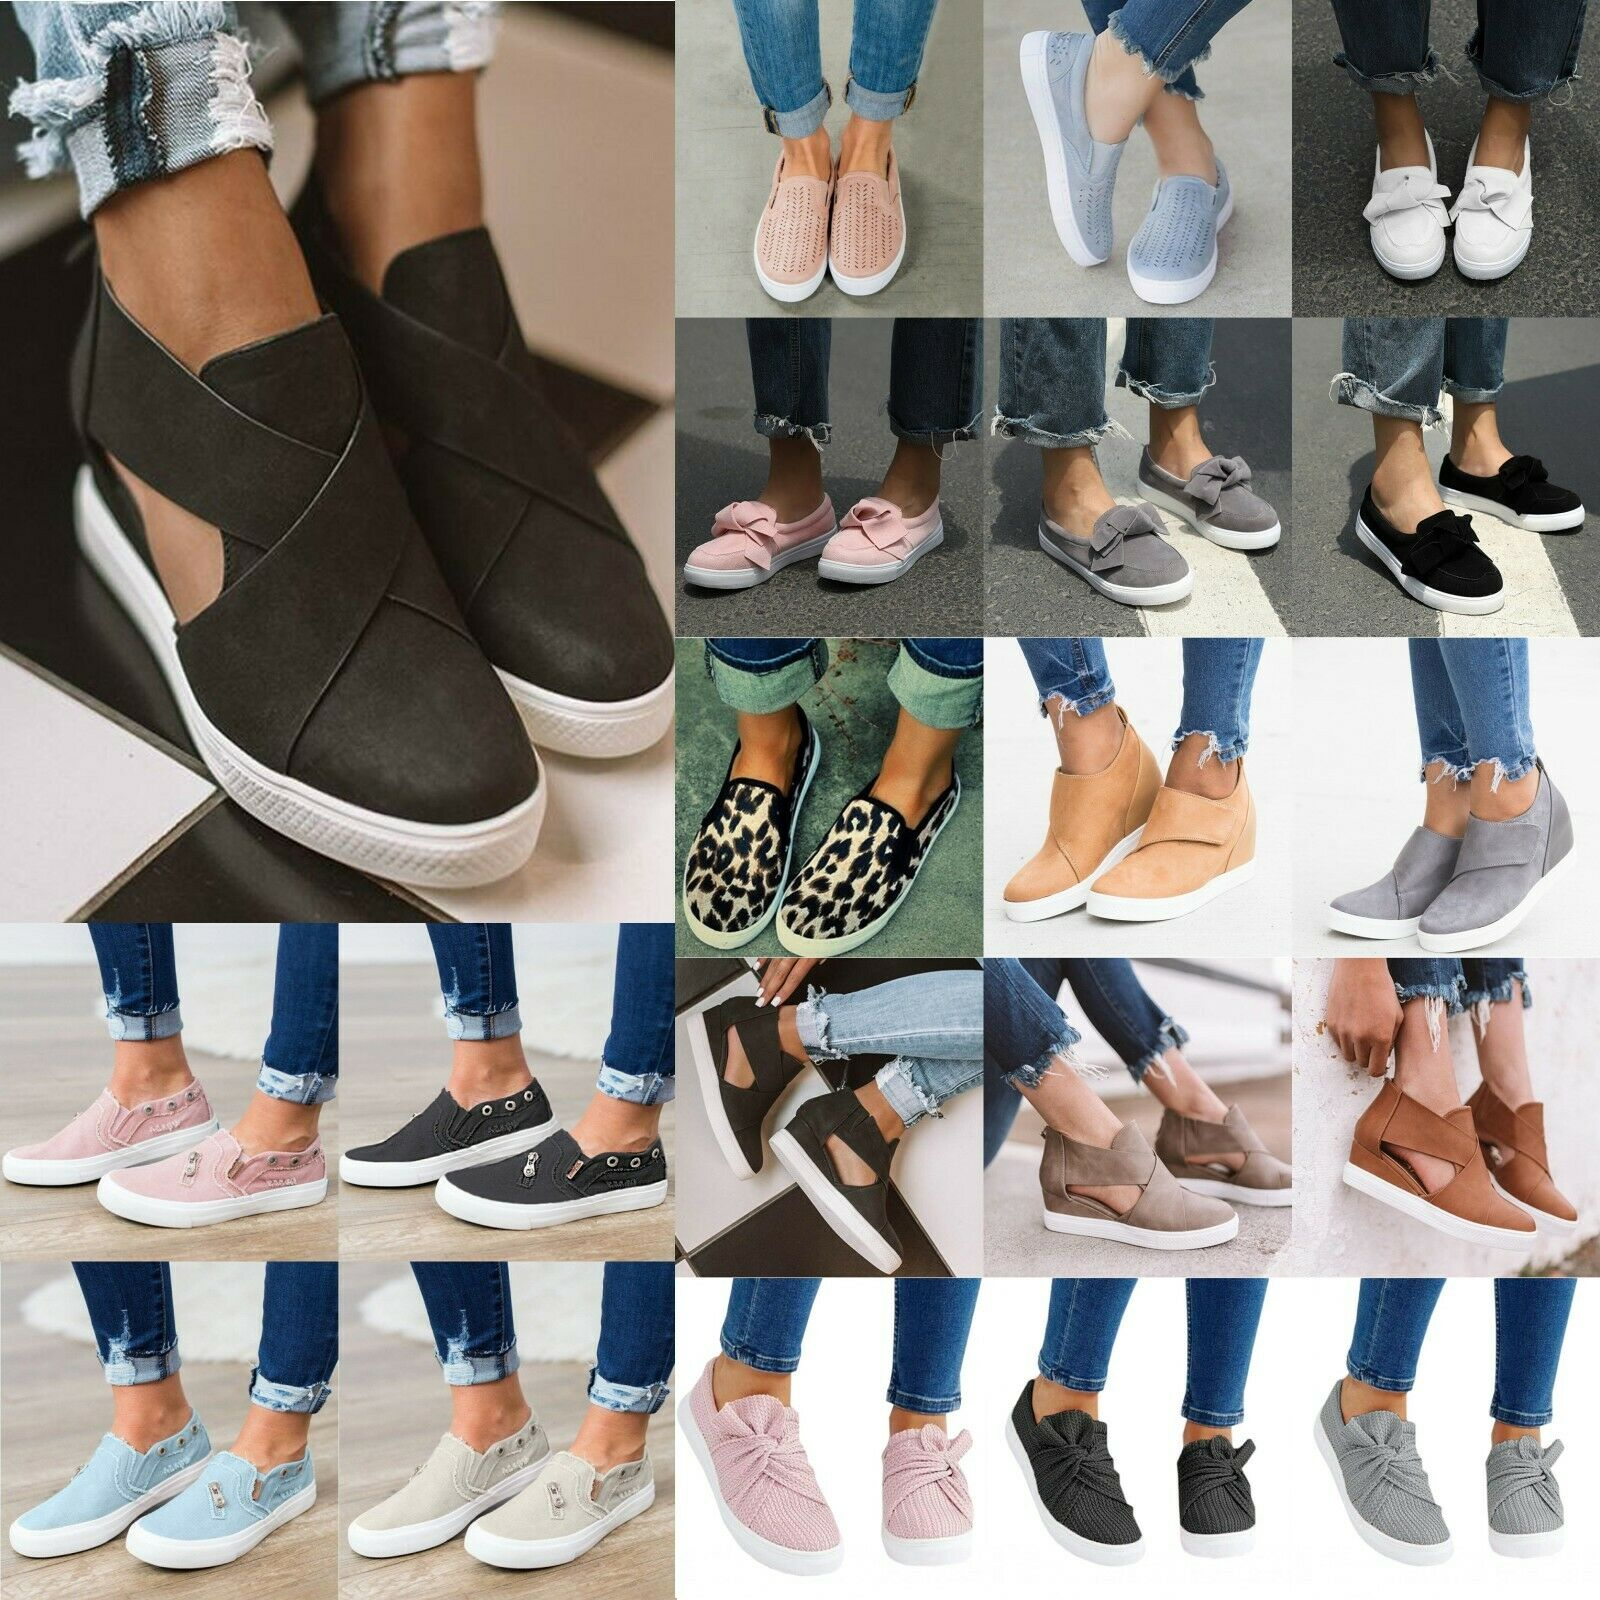 Women Lady Casual Flats Comfort Plimsolls Slip On Loafers Sneakers Pumps Shoes 1